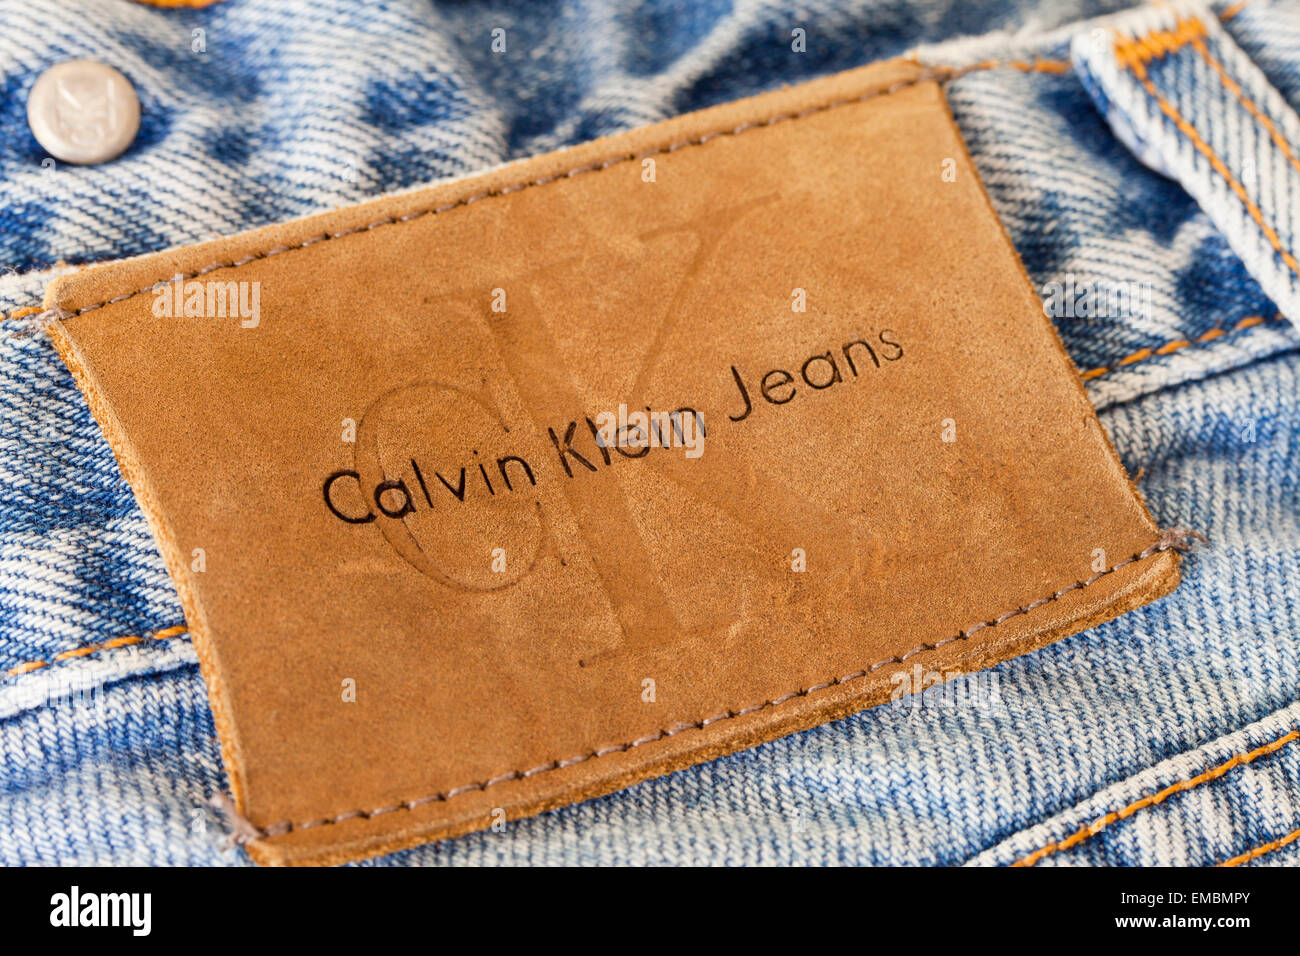 Branding patch on pair of Calvin Klein blue jeans - Stock Image